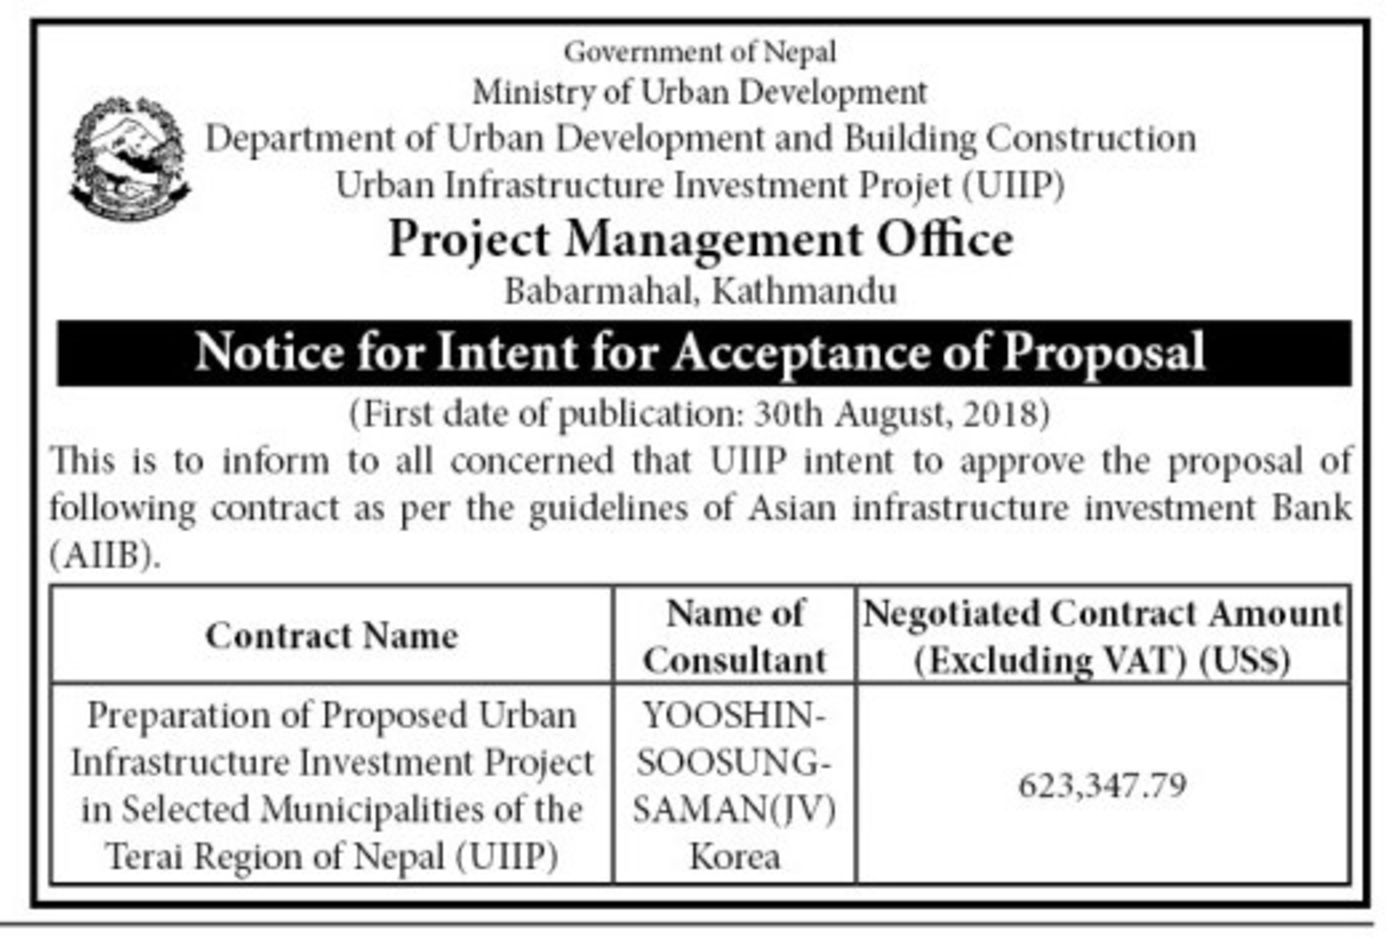 Investment Letter Of Intent.Bids And Tenders Nepal Letter Of Intent Preparation Of